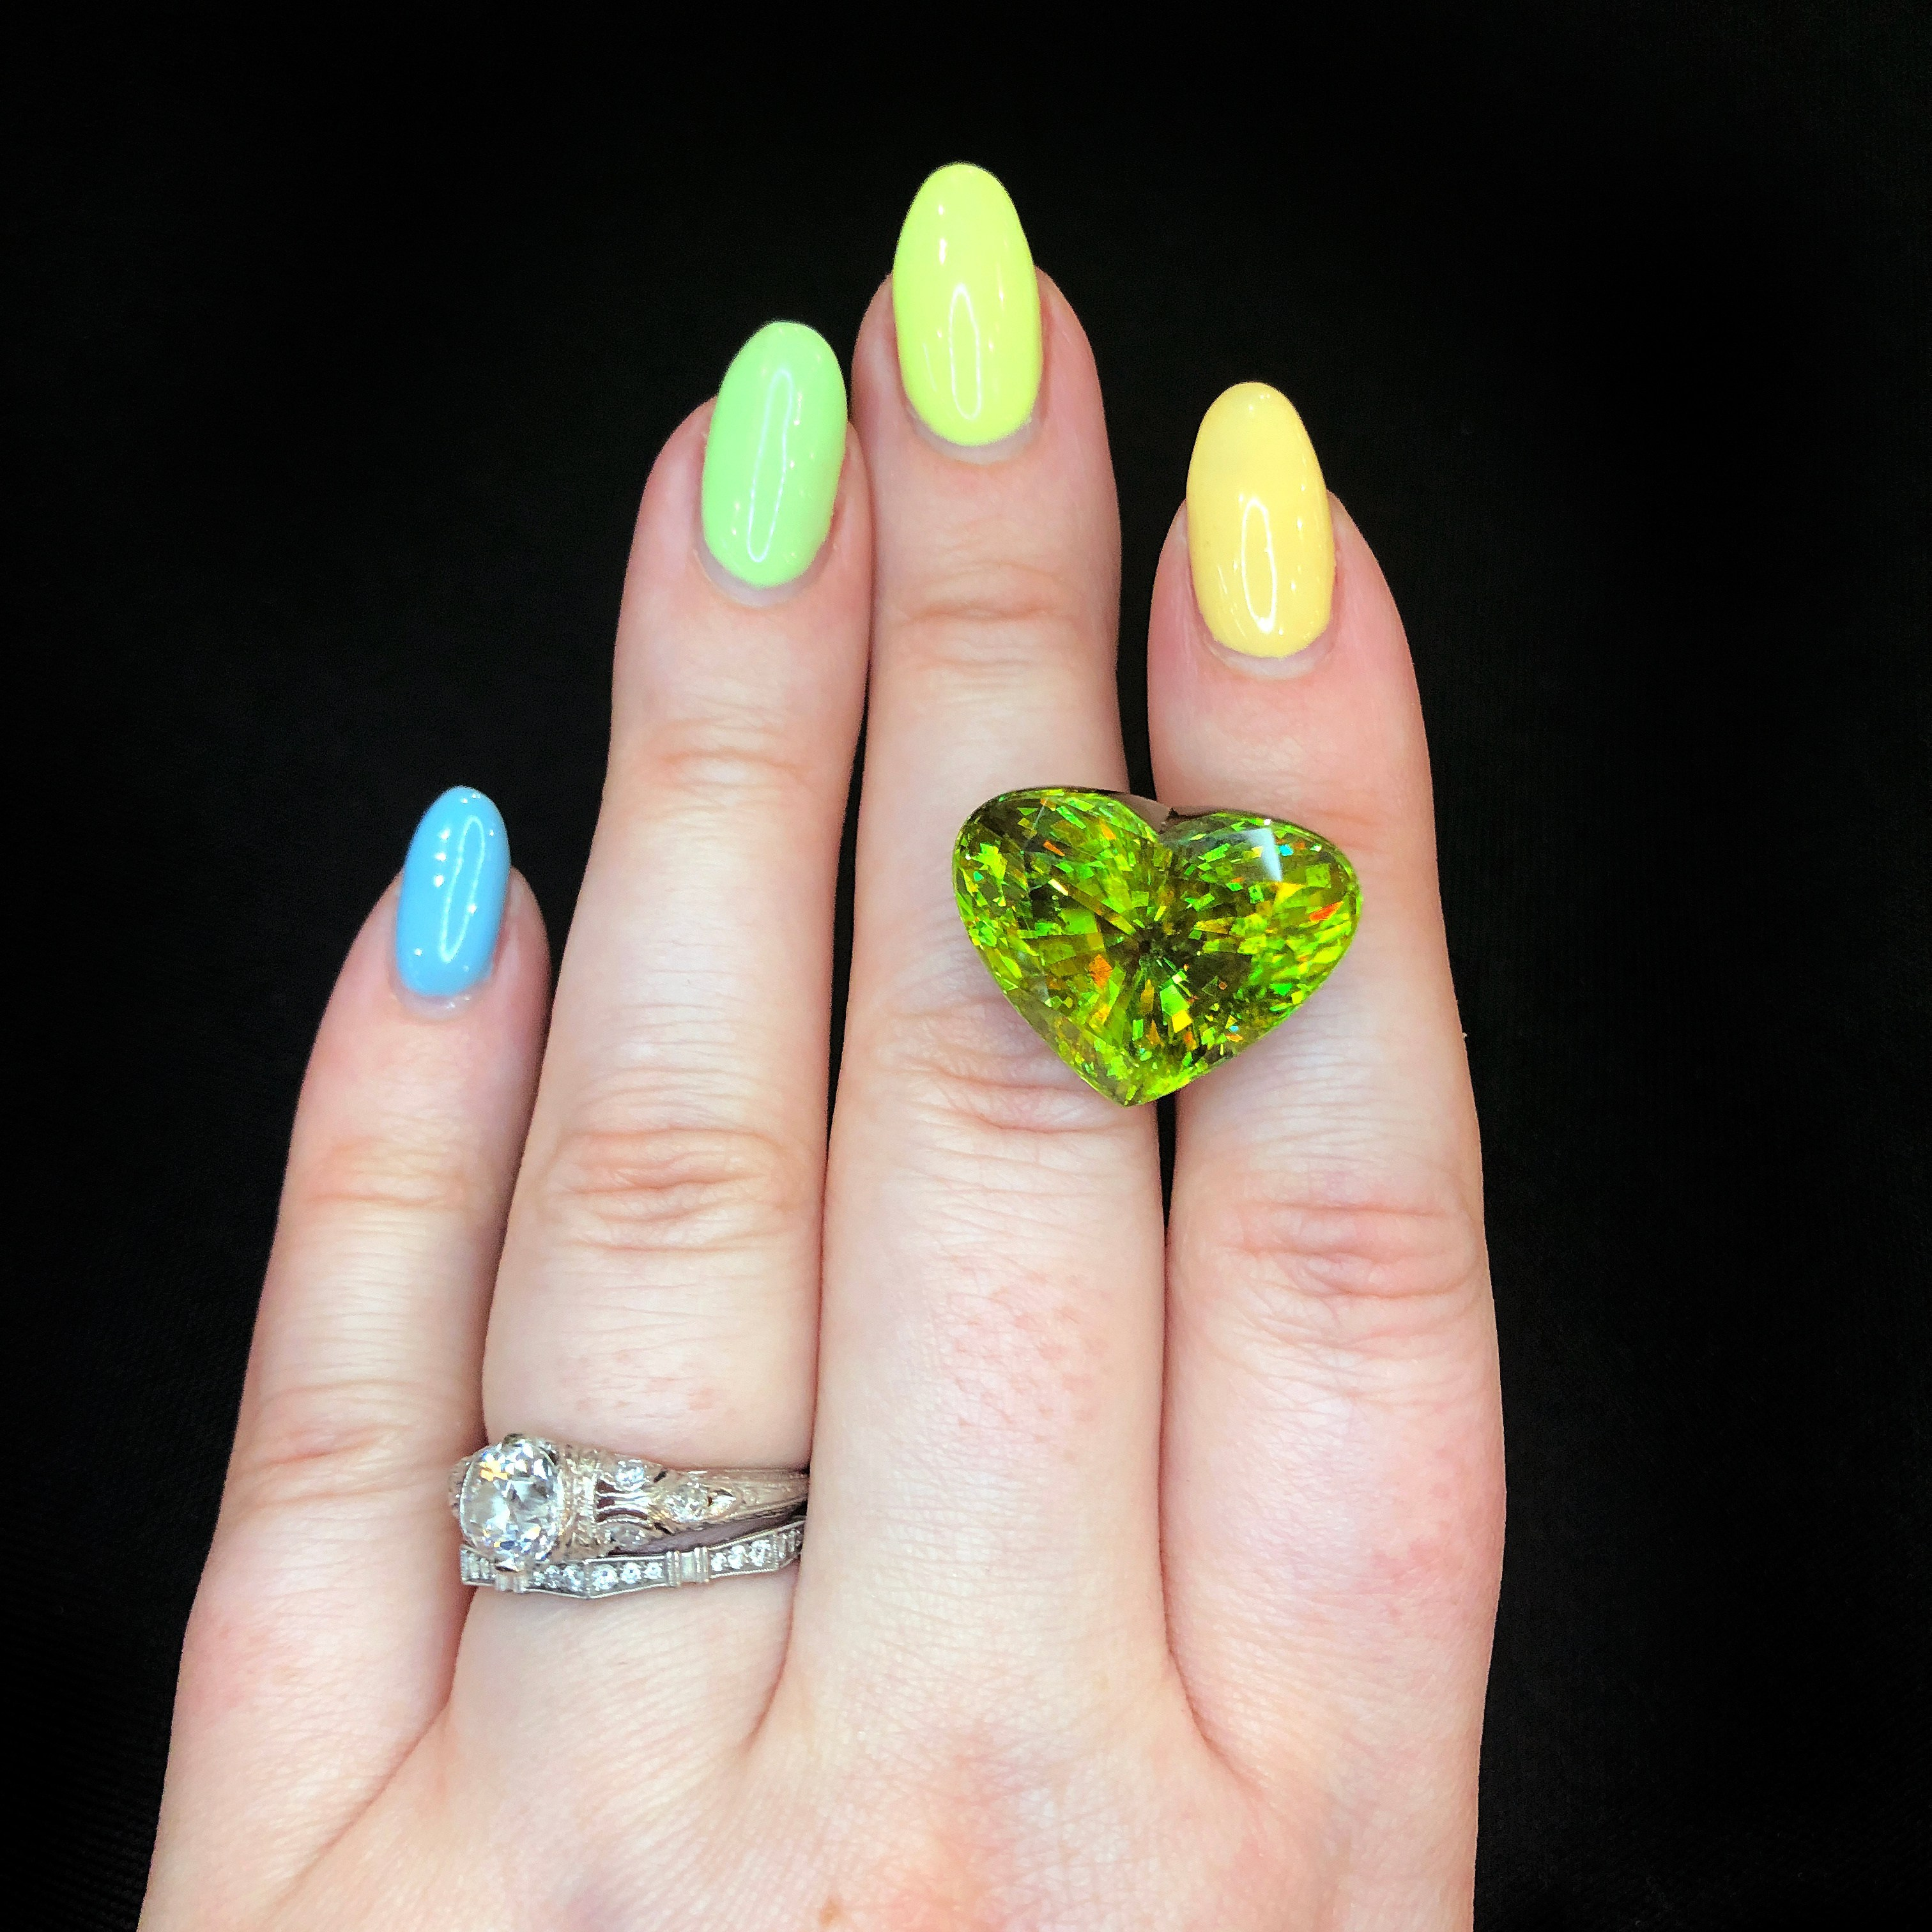 Sphene is a stunning green gemstone with orange flecks. This heart-shaped beauty is from Michael Couch.